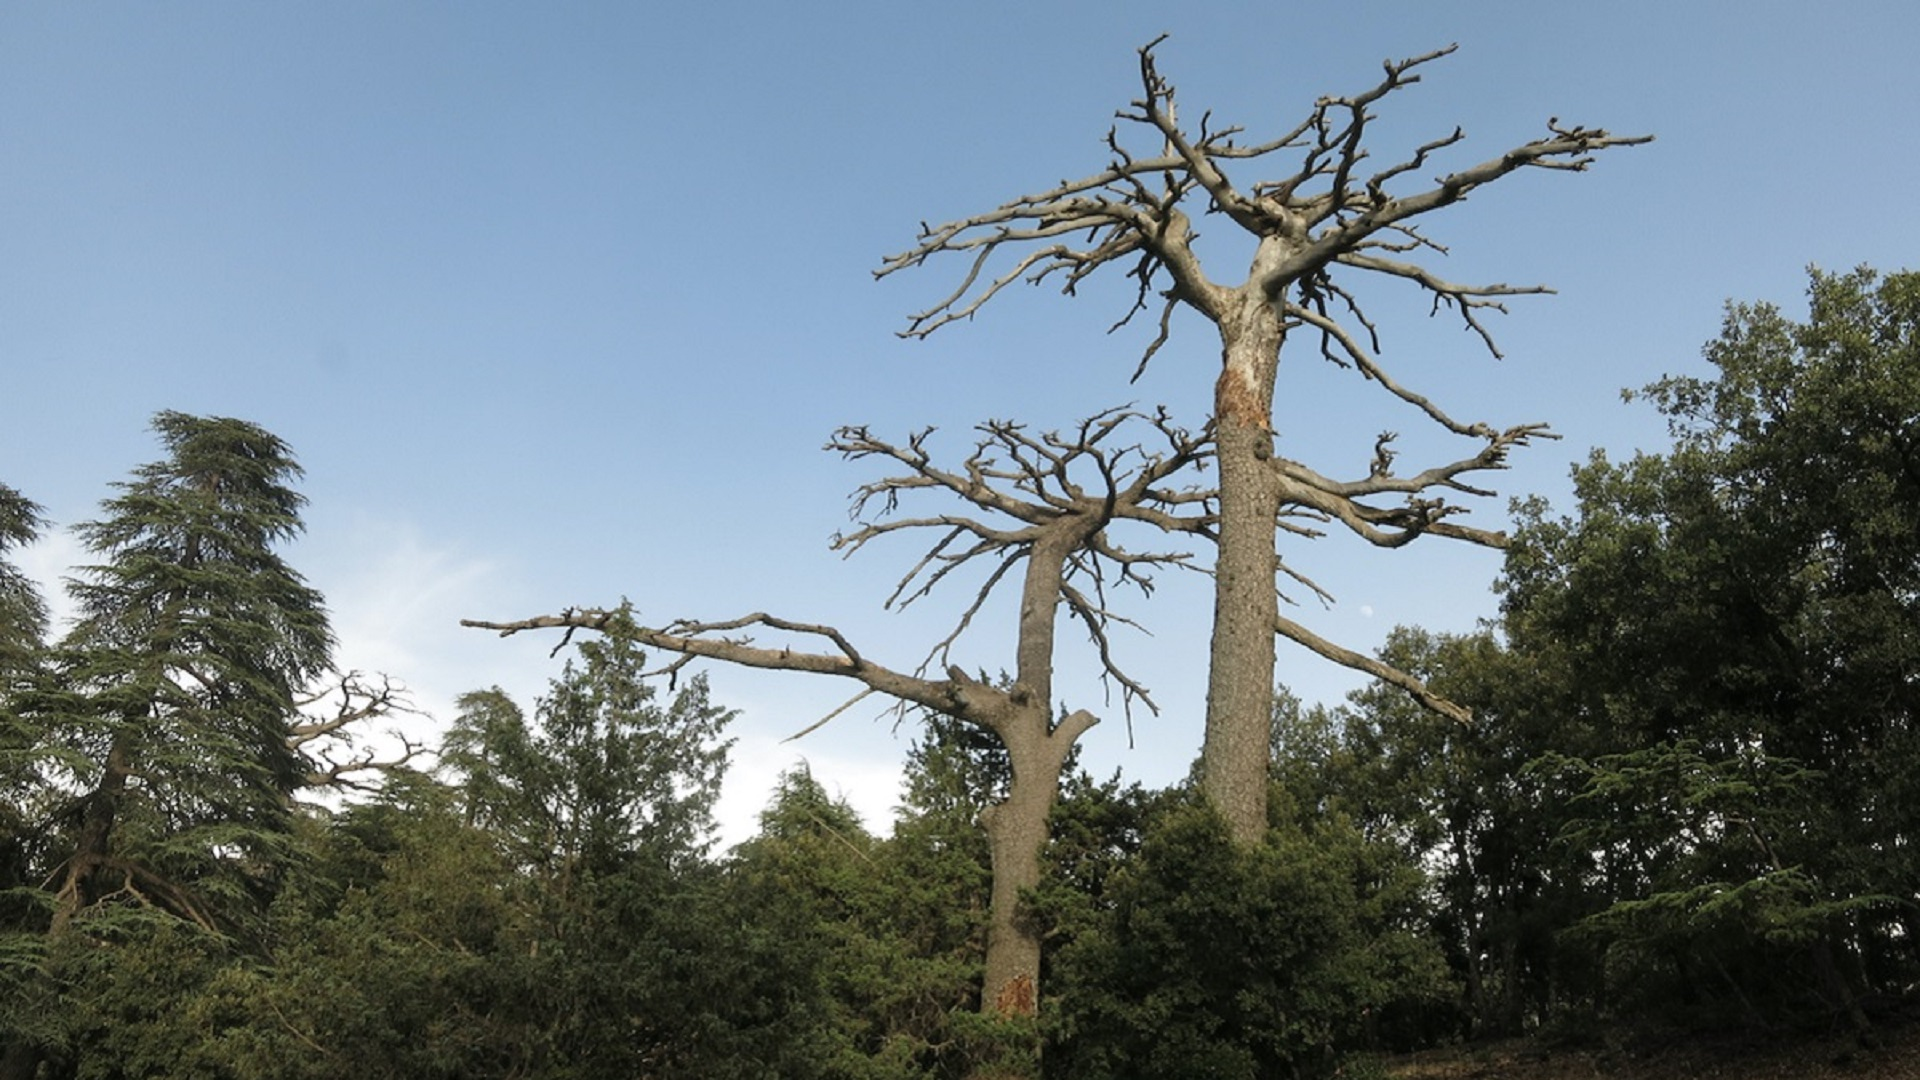 Two large trees in forest